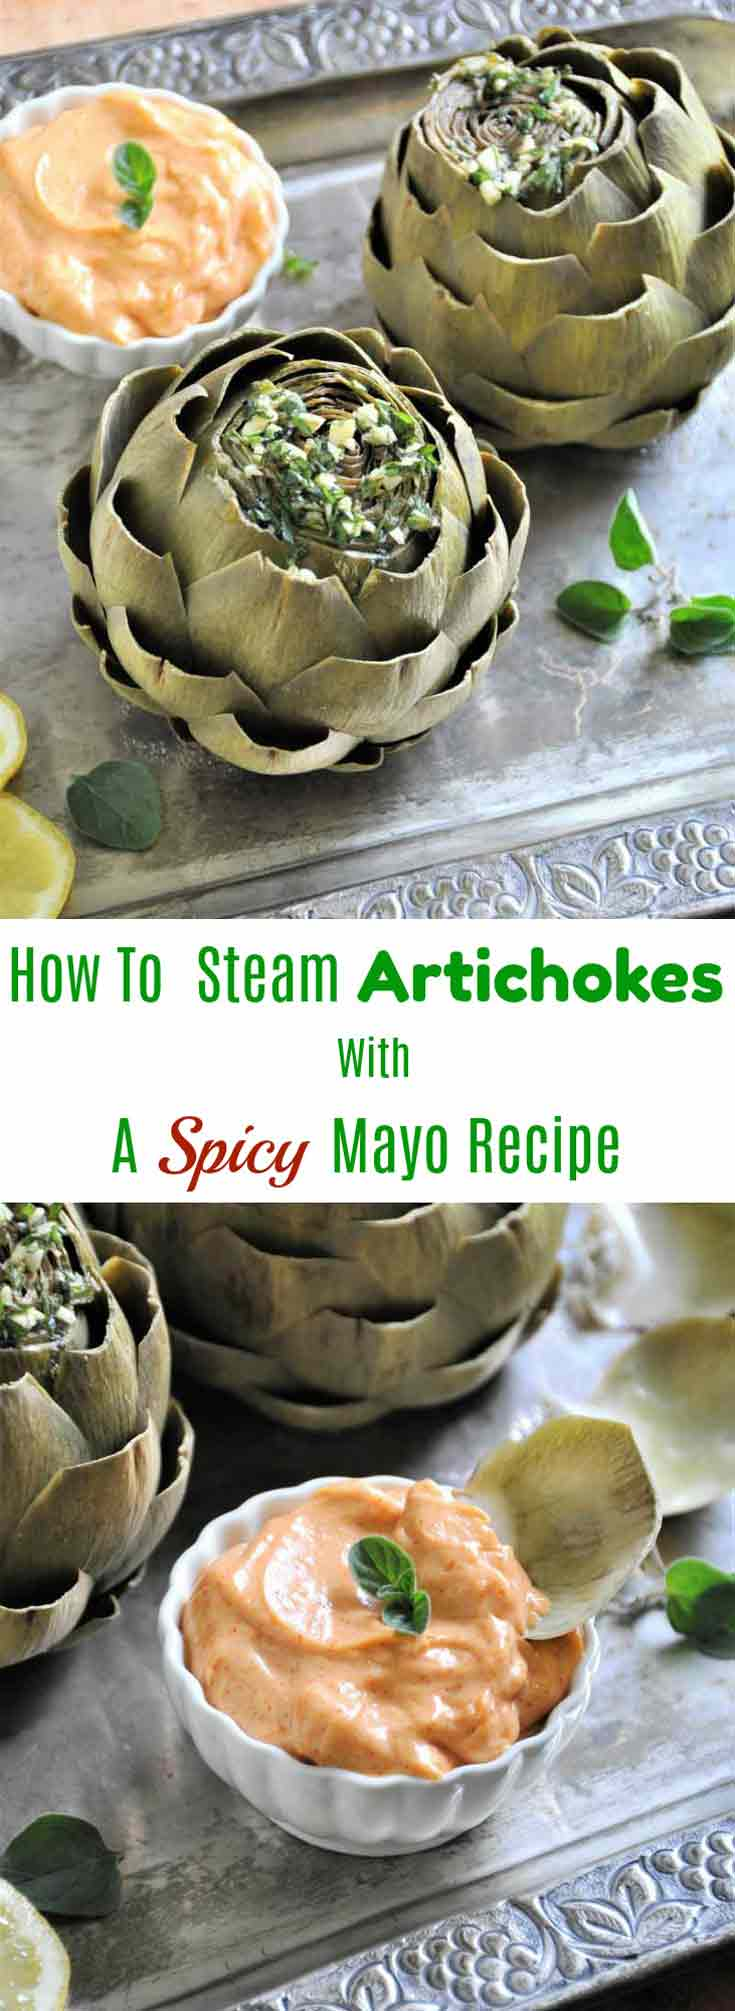 Learn how to steam artichokes and make an easy spicy mayonnaise dip!